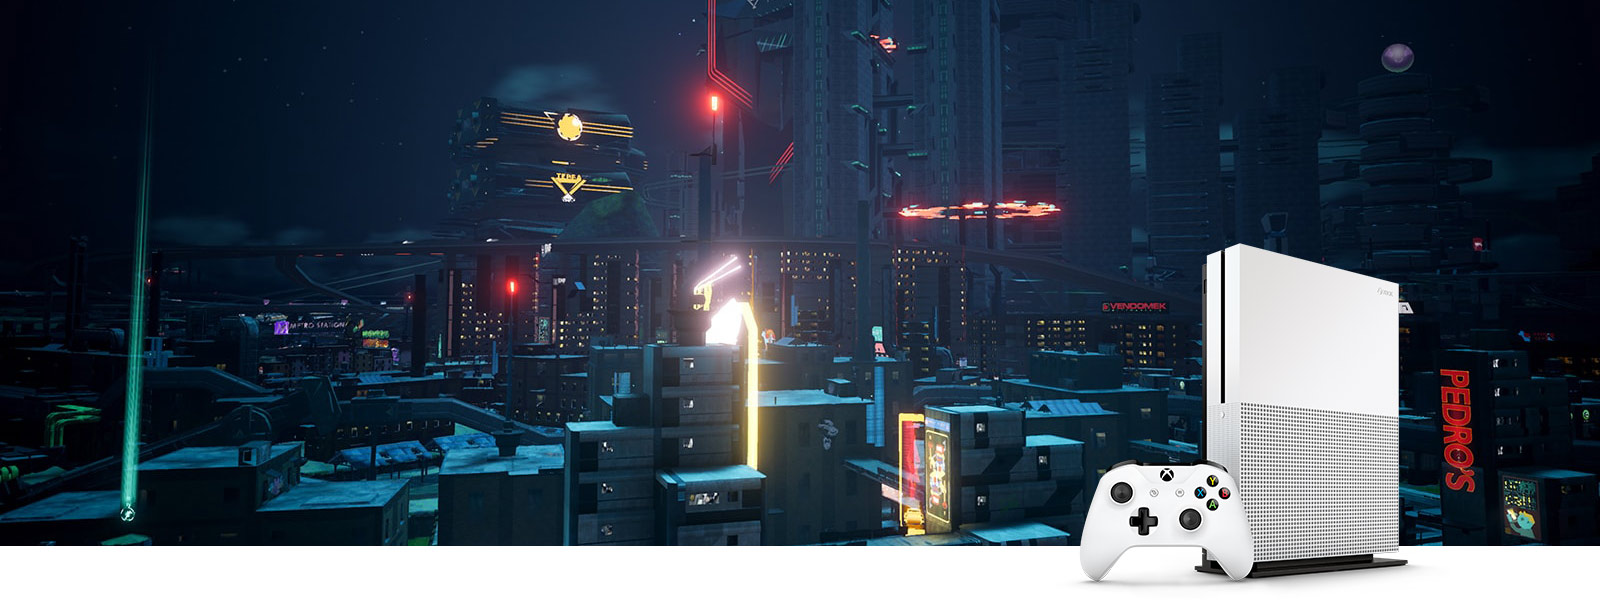 Crackdown 3 – Screenshot ohne HDR